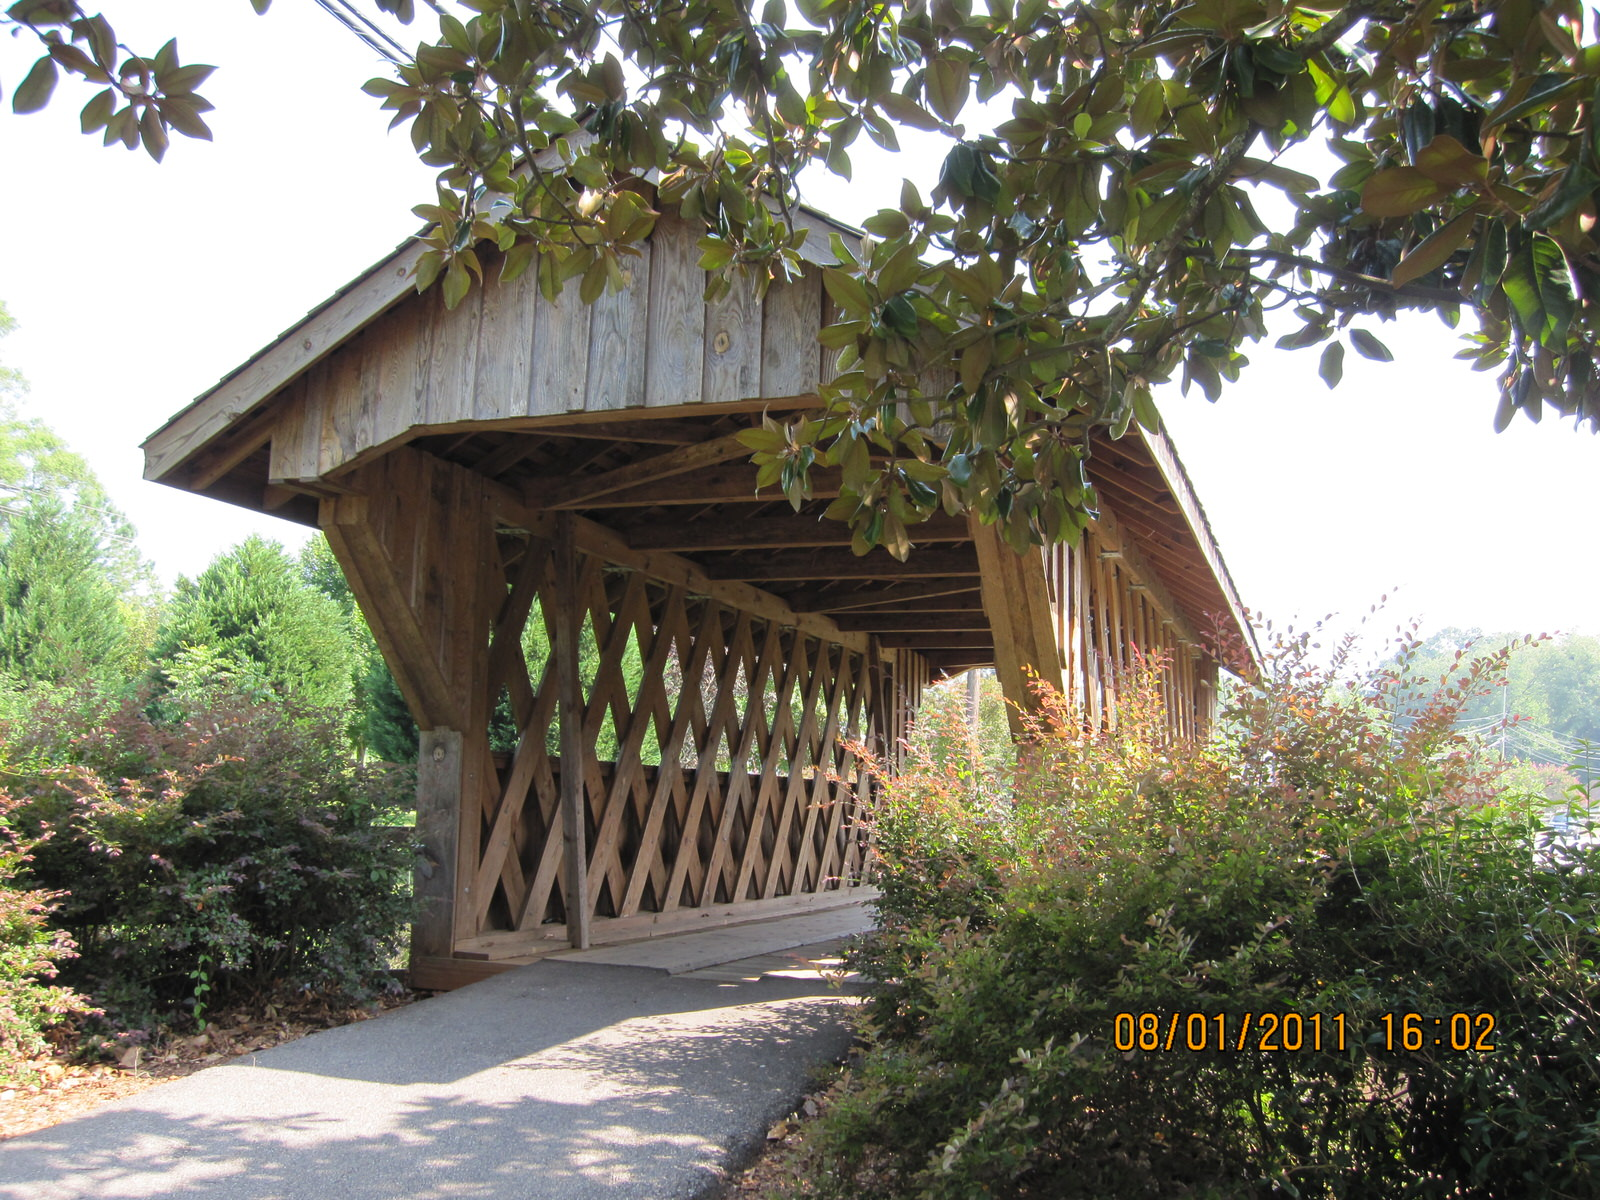 photo: Covered bridge. Photo by Rob Grant.